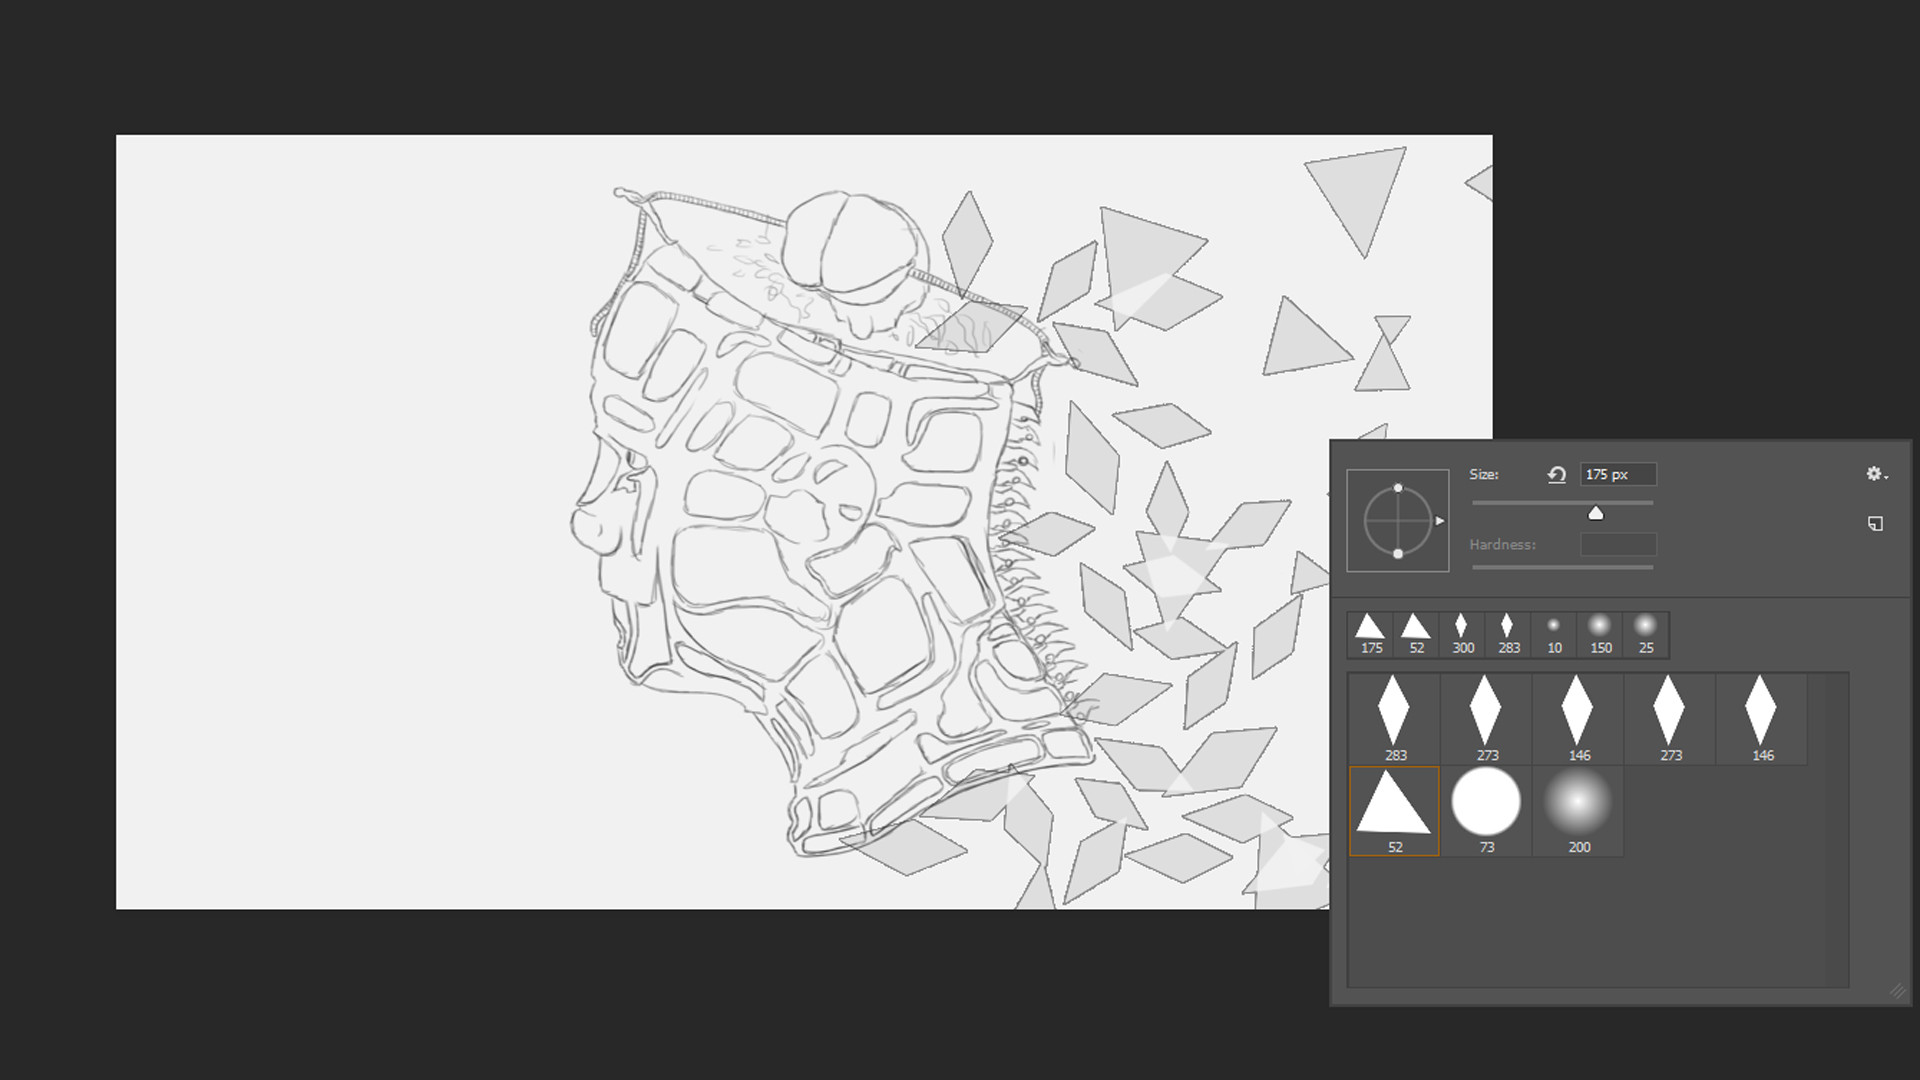 """Here I was testing my polygonal brushes for the """"Lowpoly"""" effect that I wanted for the image"""